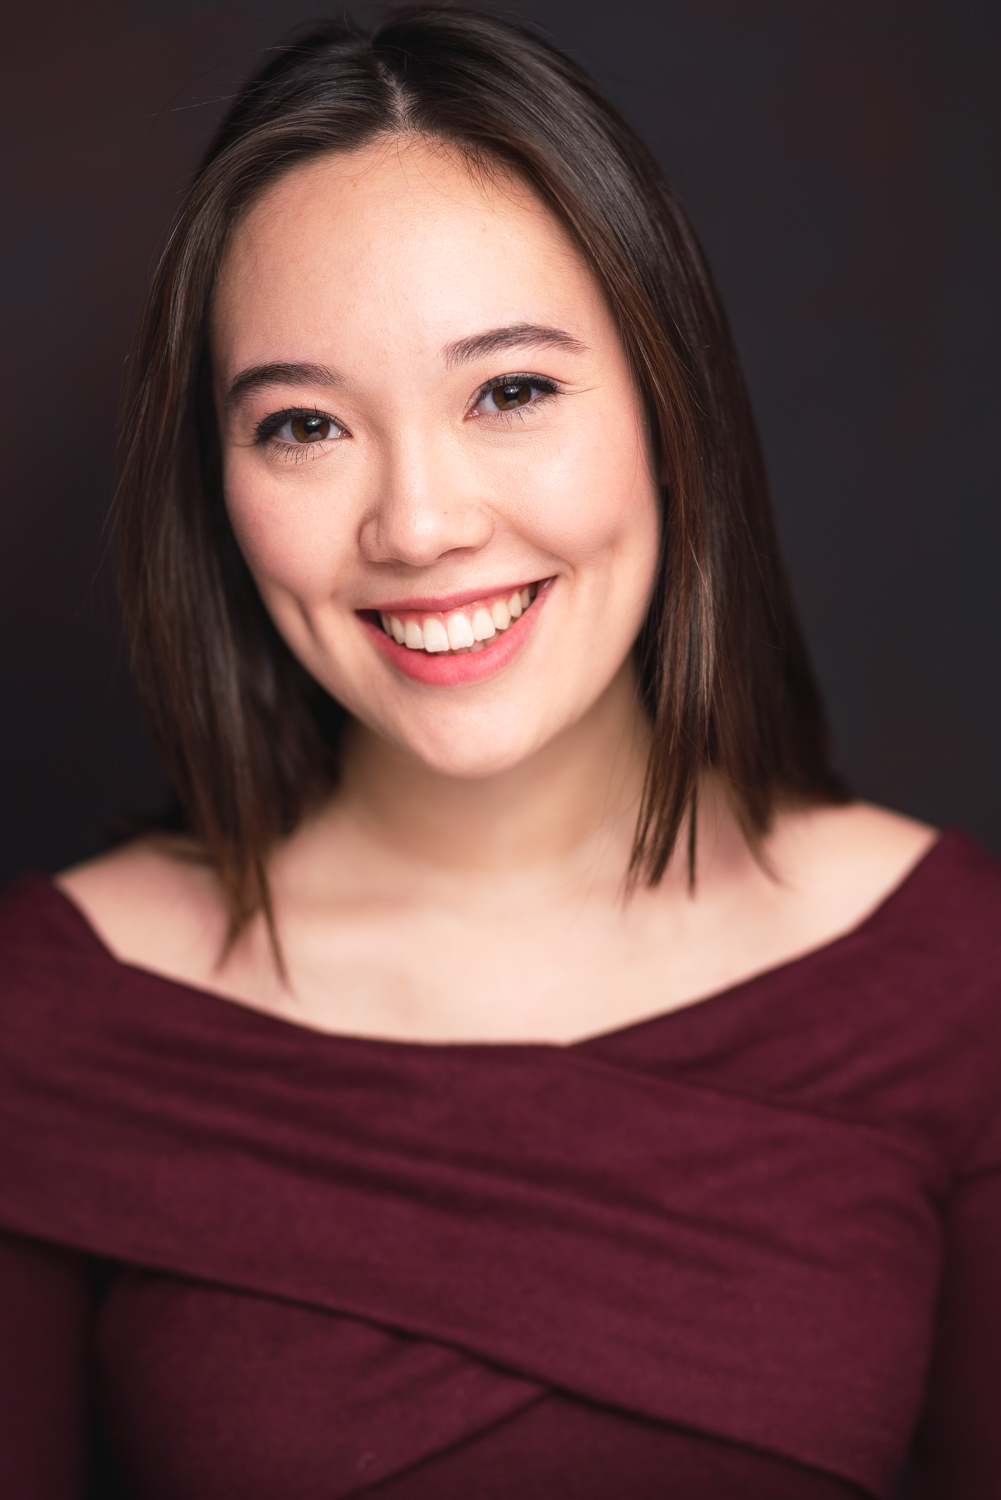 """Karina L. Cowperthwaite '23 is the director of the Asian Student Arts Project's production of """"Legally Blonde"""" this semester."""